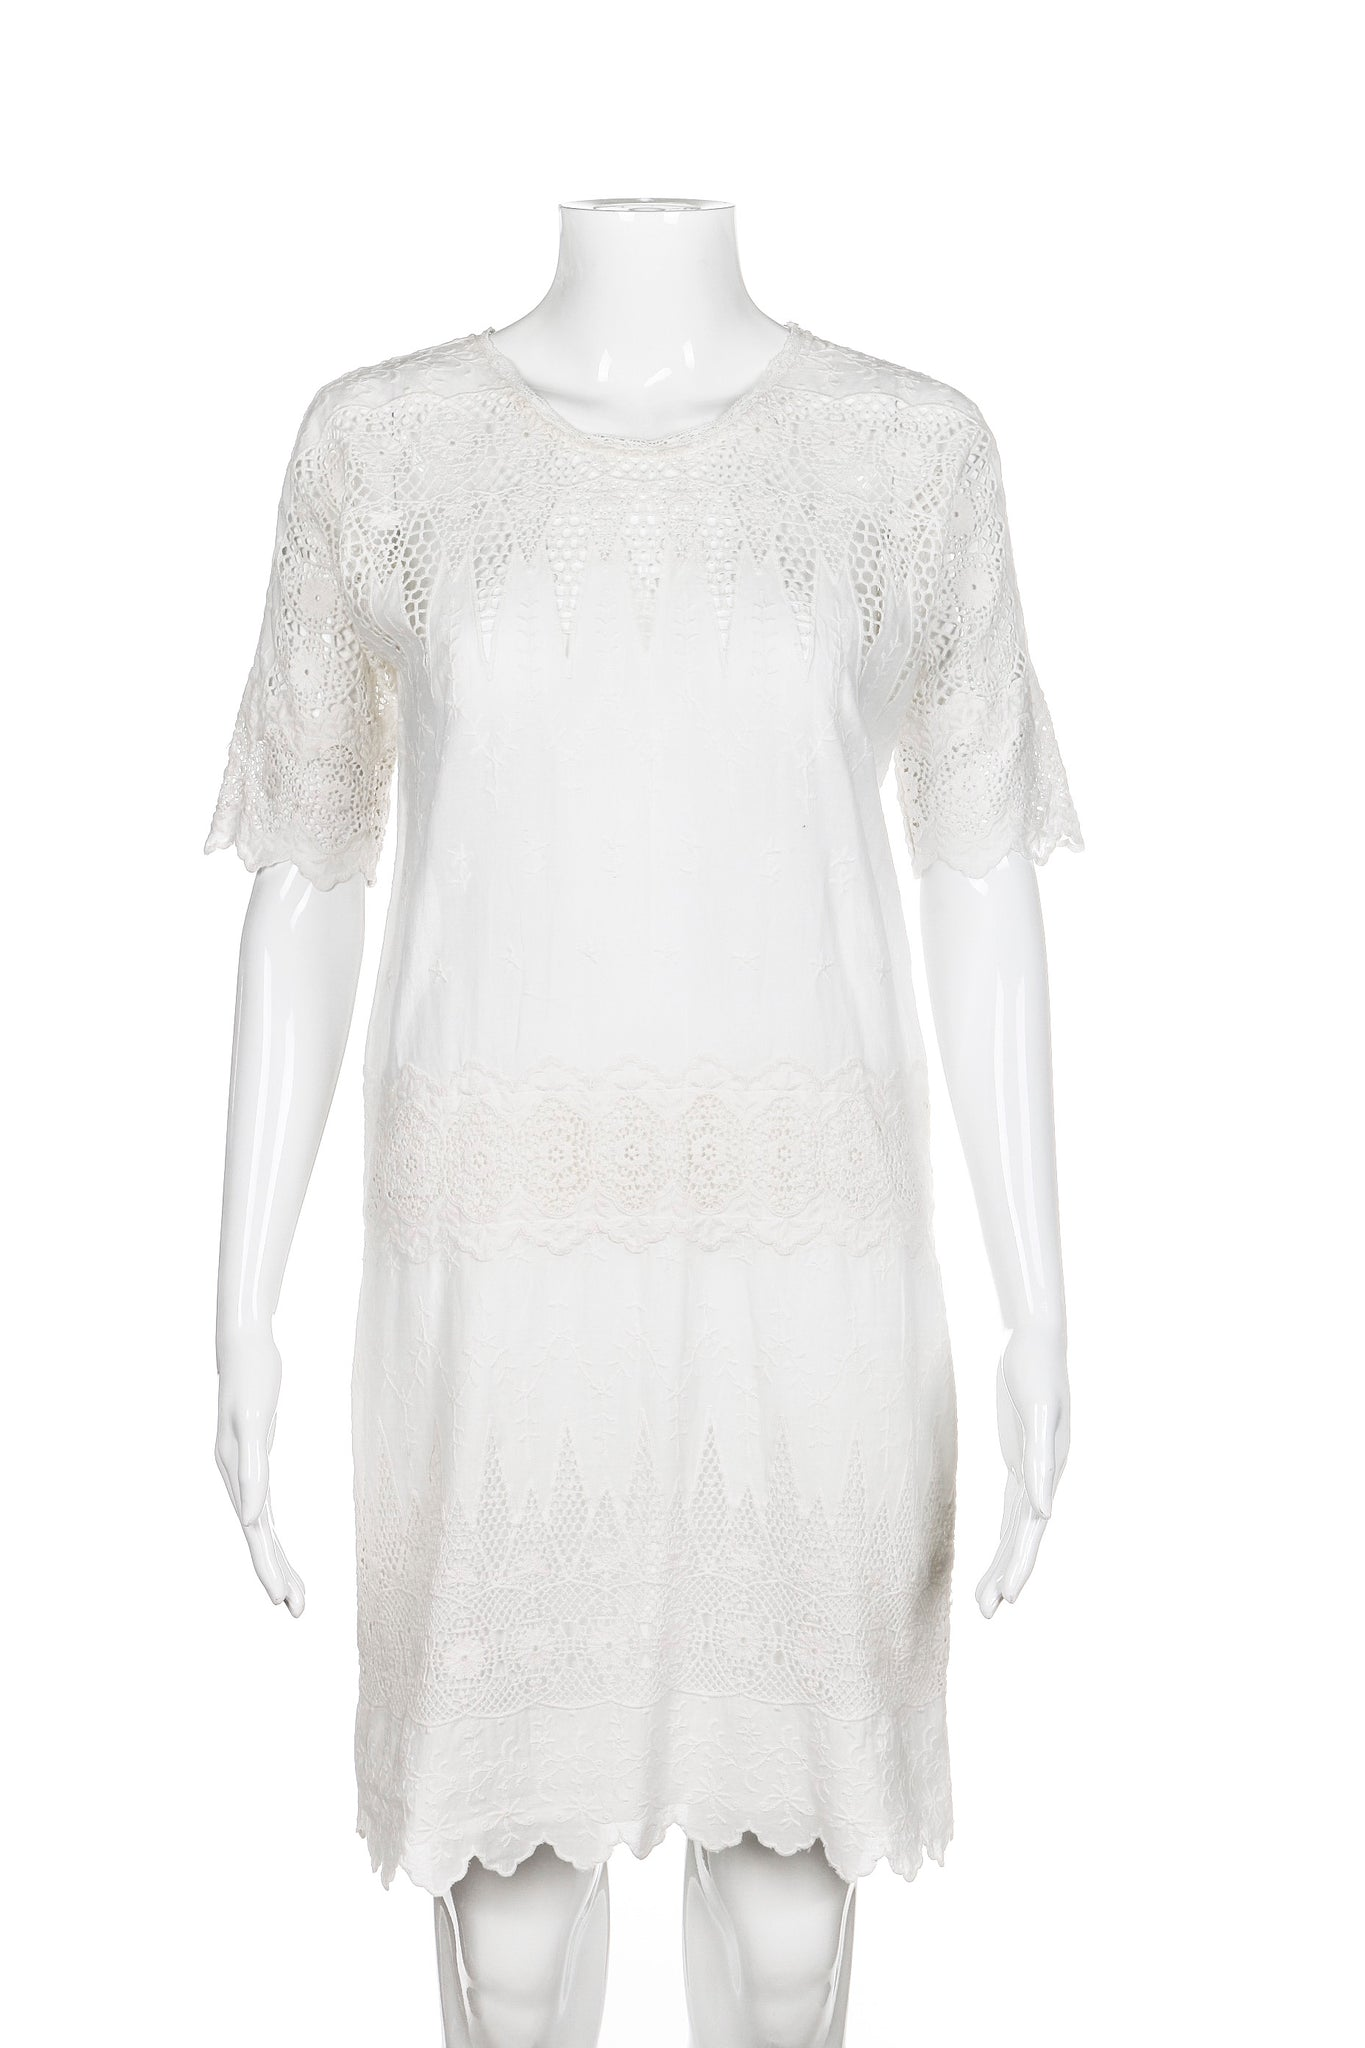 ULLA JOHNSON Viola Dress Size 0 White Crochet Lace Embroidery XS Sheath Style-Hunting